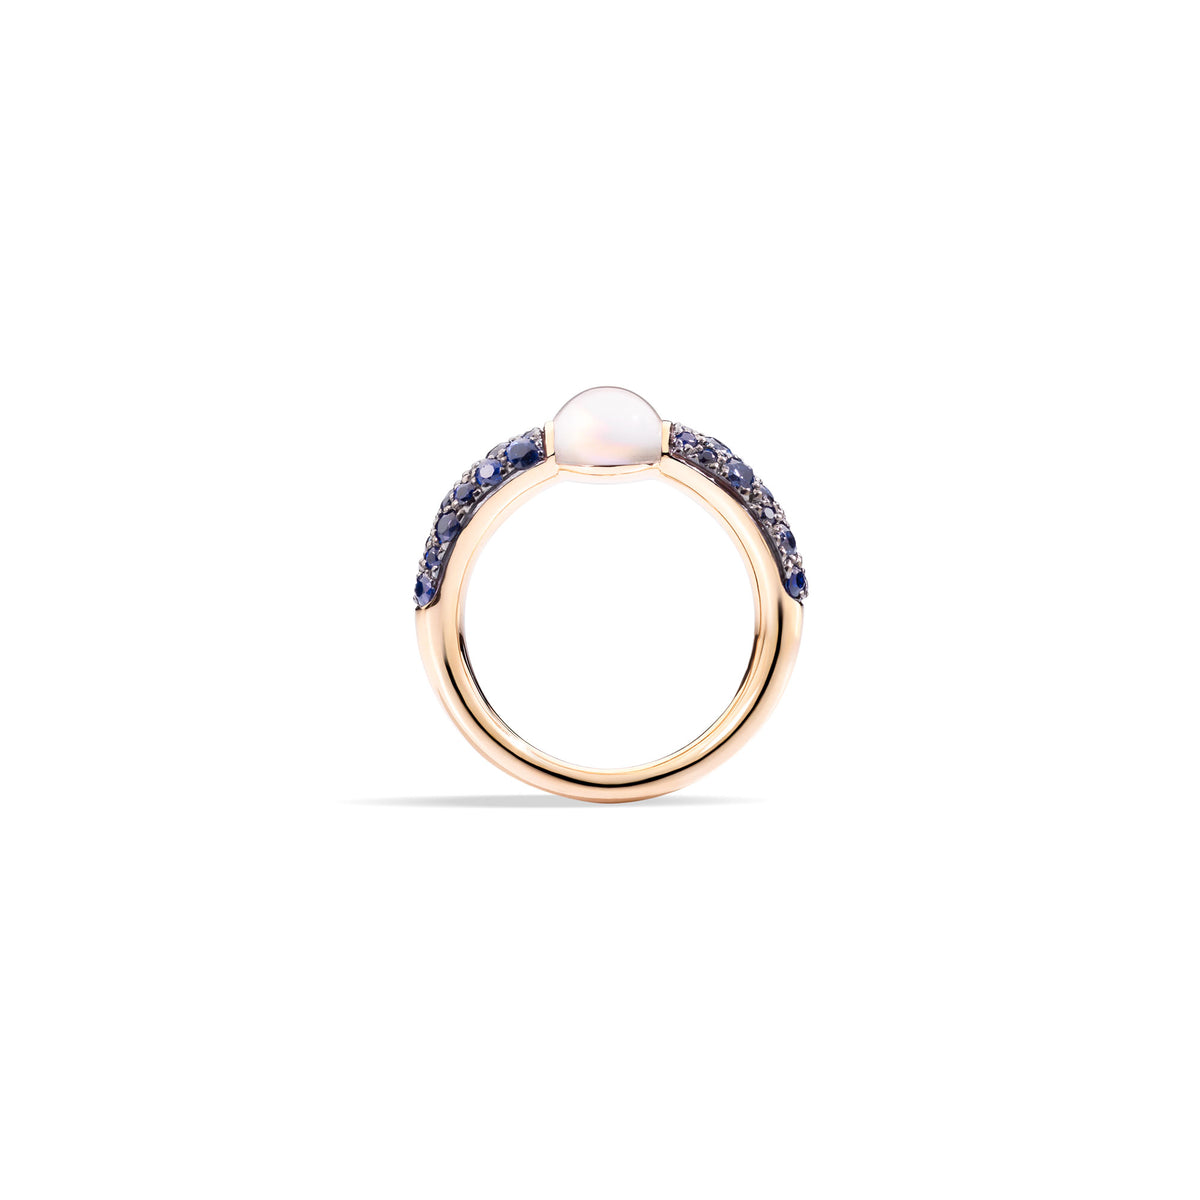 M'ama non M'ama Ring in 18k Rose Gold with Moonstone and Blue Sapphires